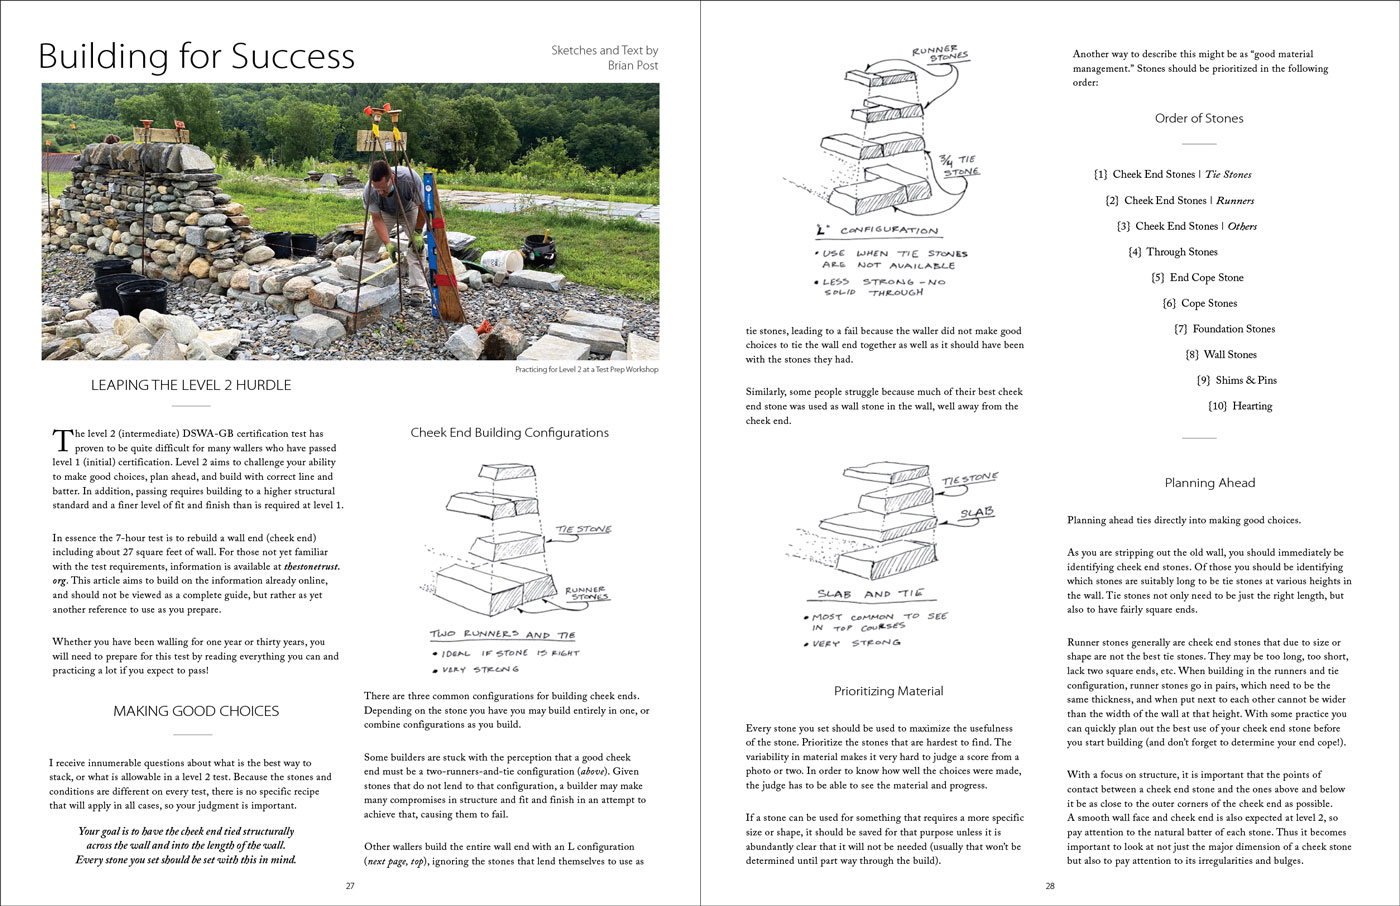 Building for Success Article by Brian Post